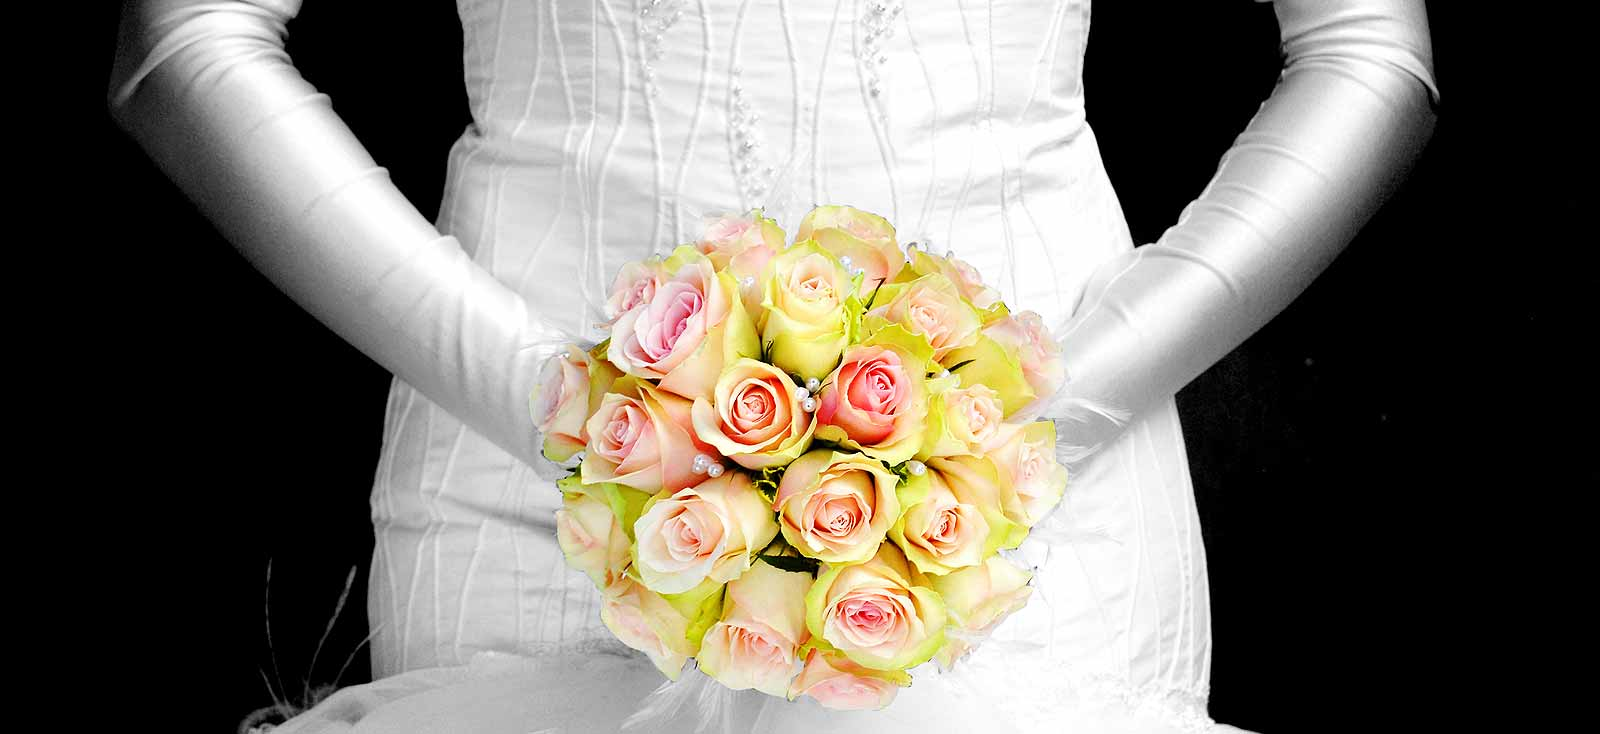 Wedding services in Italy: wedding photographers, wedding flowers